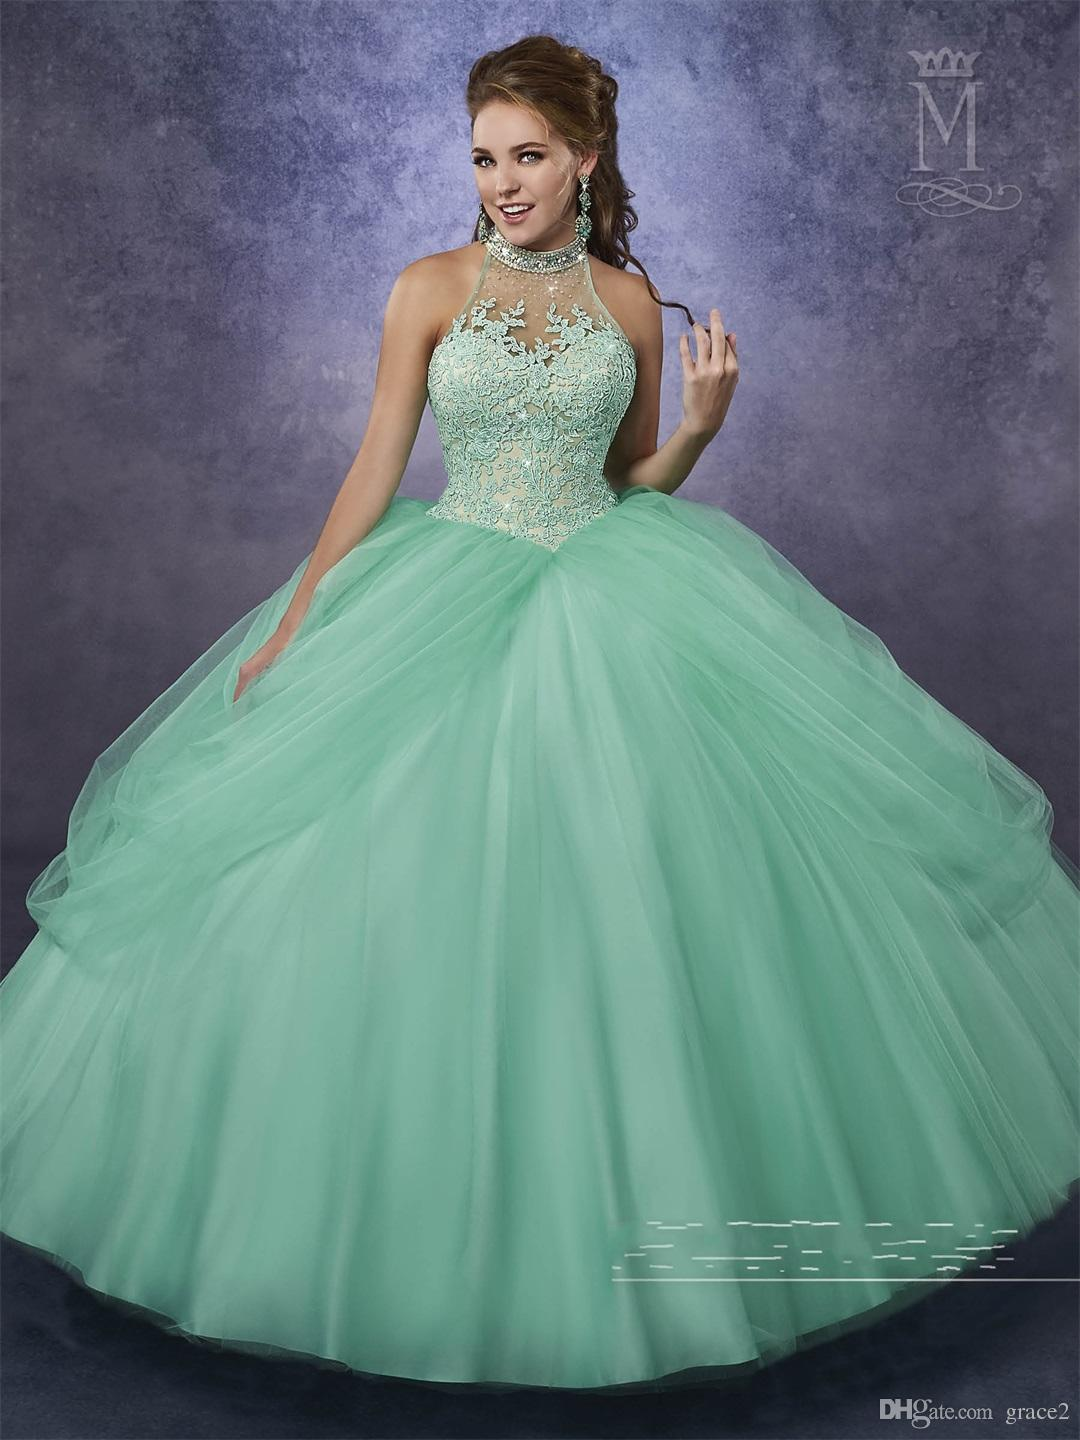 Green neon and pink quinceanera dresses